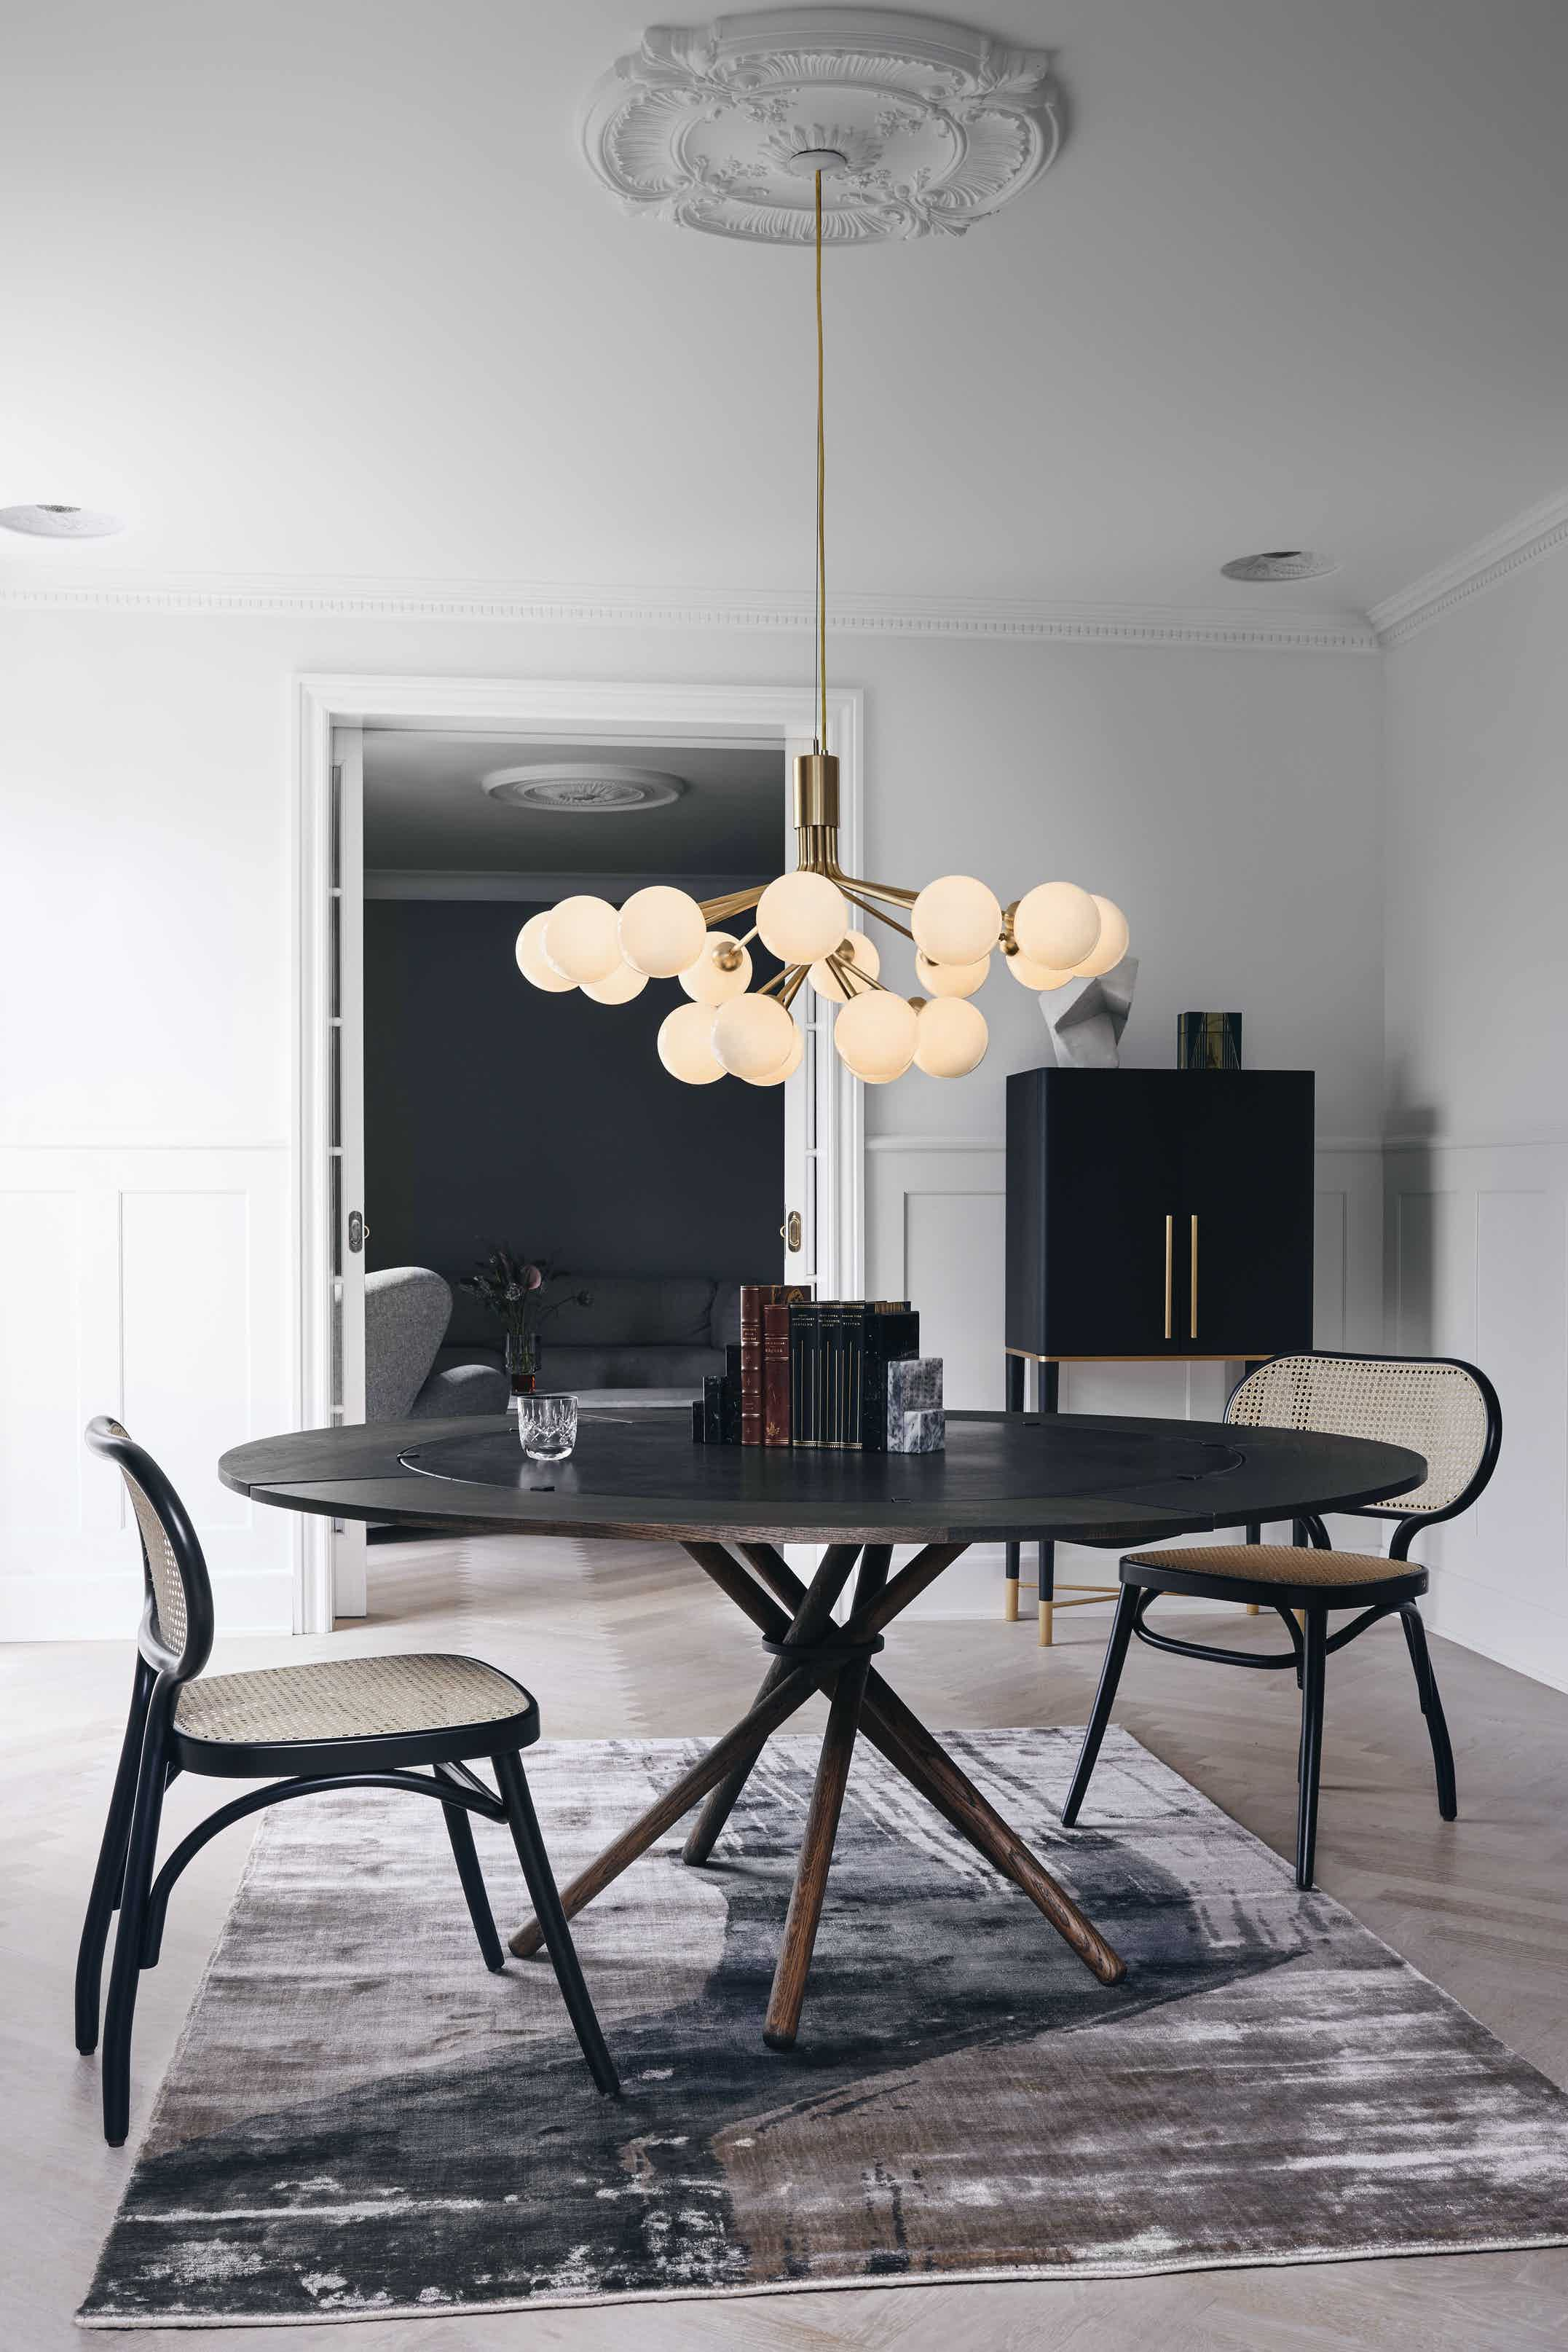 Apiales 18 Chandelier By Nuura At Haute Living